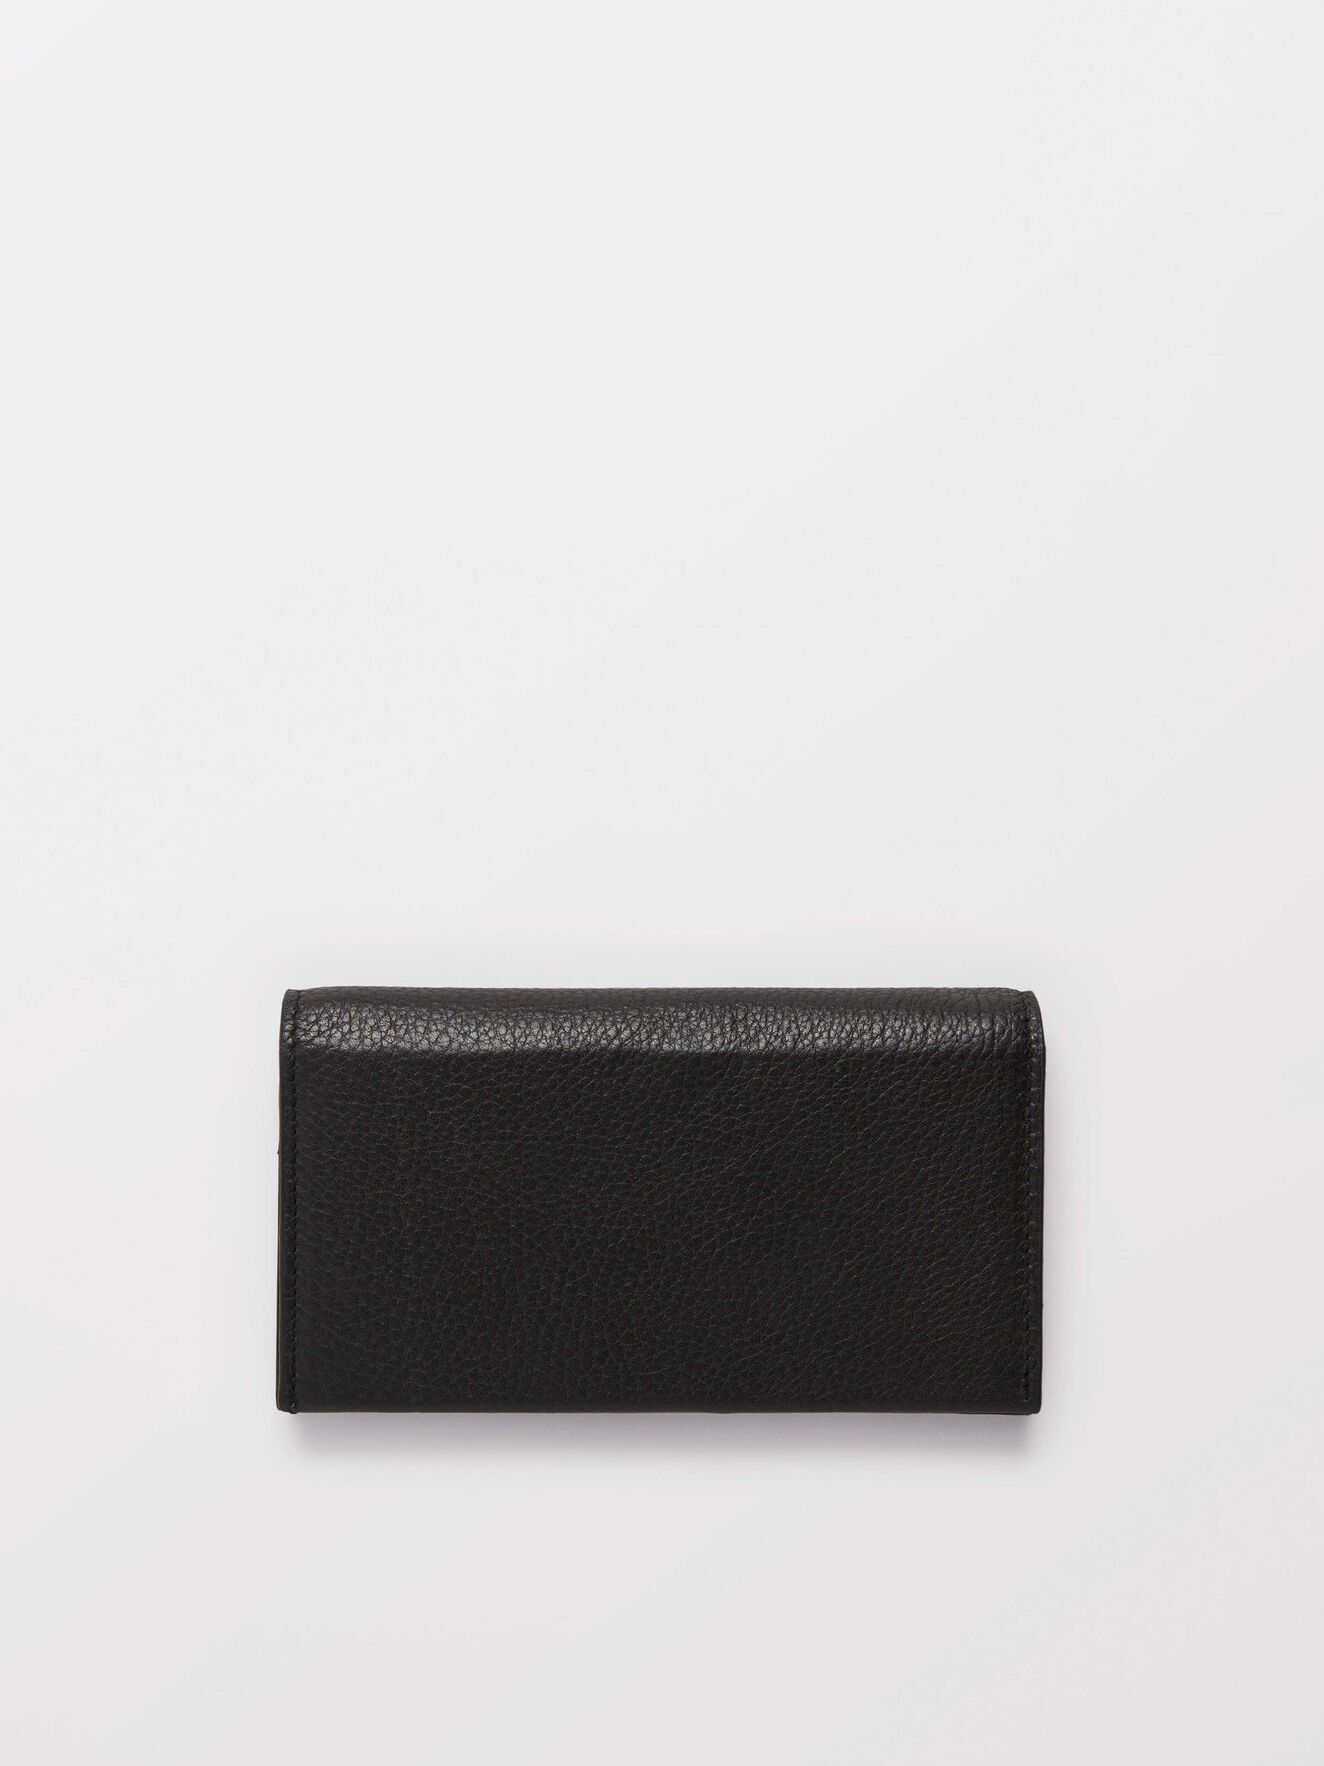 Stilpo Wallet in Black from Tiger of Sweden